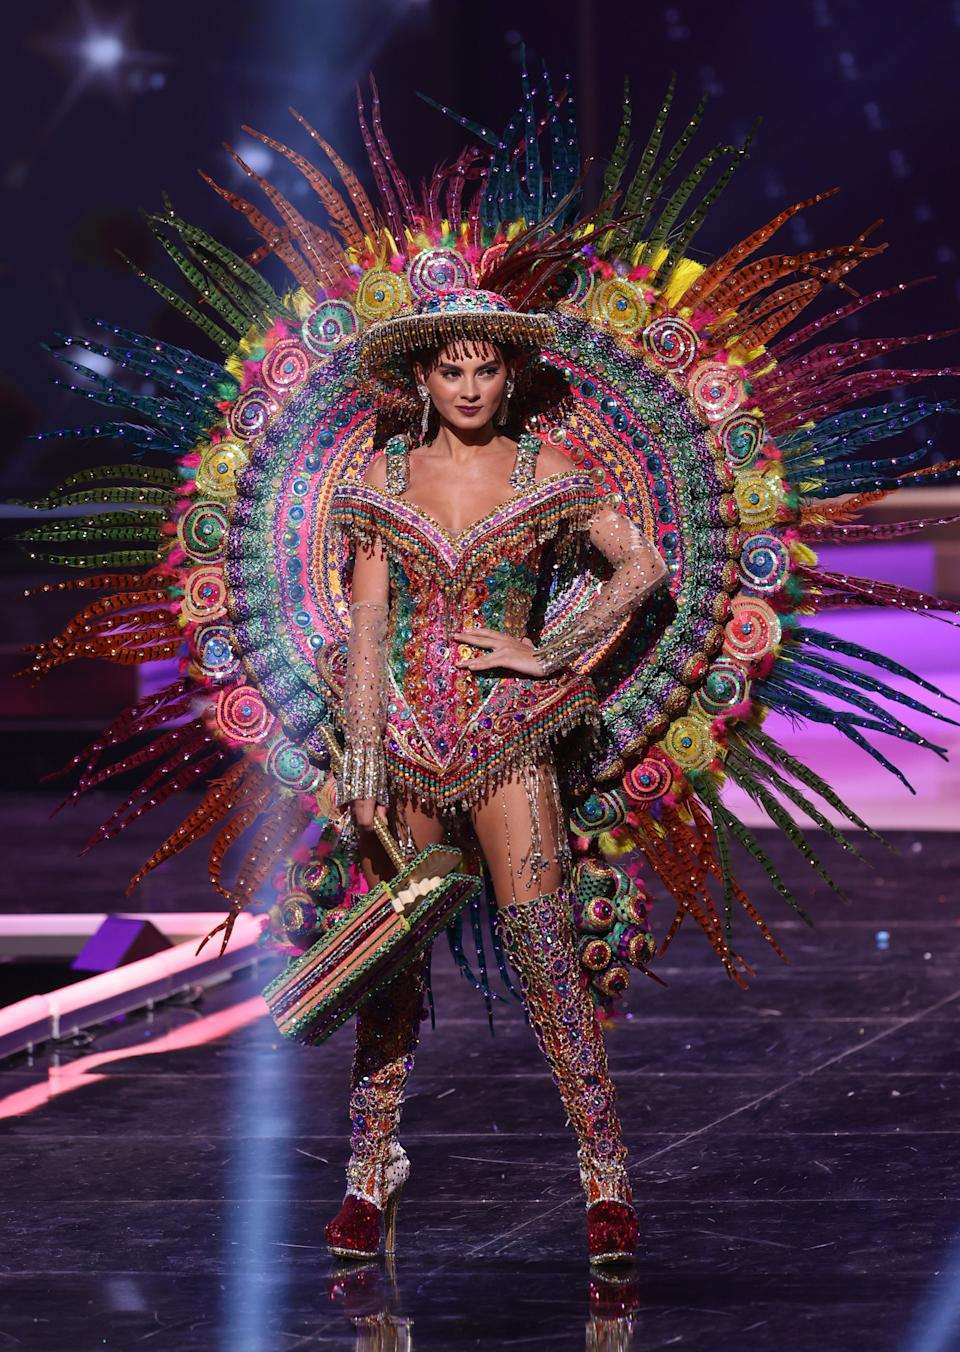 <p>Miss Nicaragua Ana Marcelo appears onstage at the Miss Universe 2021 - National Costume Show at Seminole Hard Rock Hotel & Casino on May 13, 2021 in Hollywood, Florida. (Photo by Rodrigo Varela/Getty Images)</p>